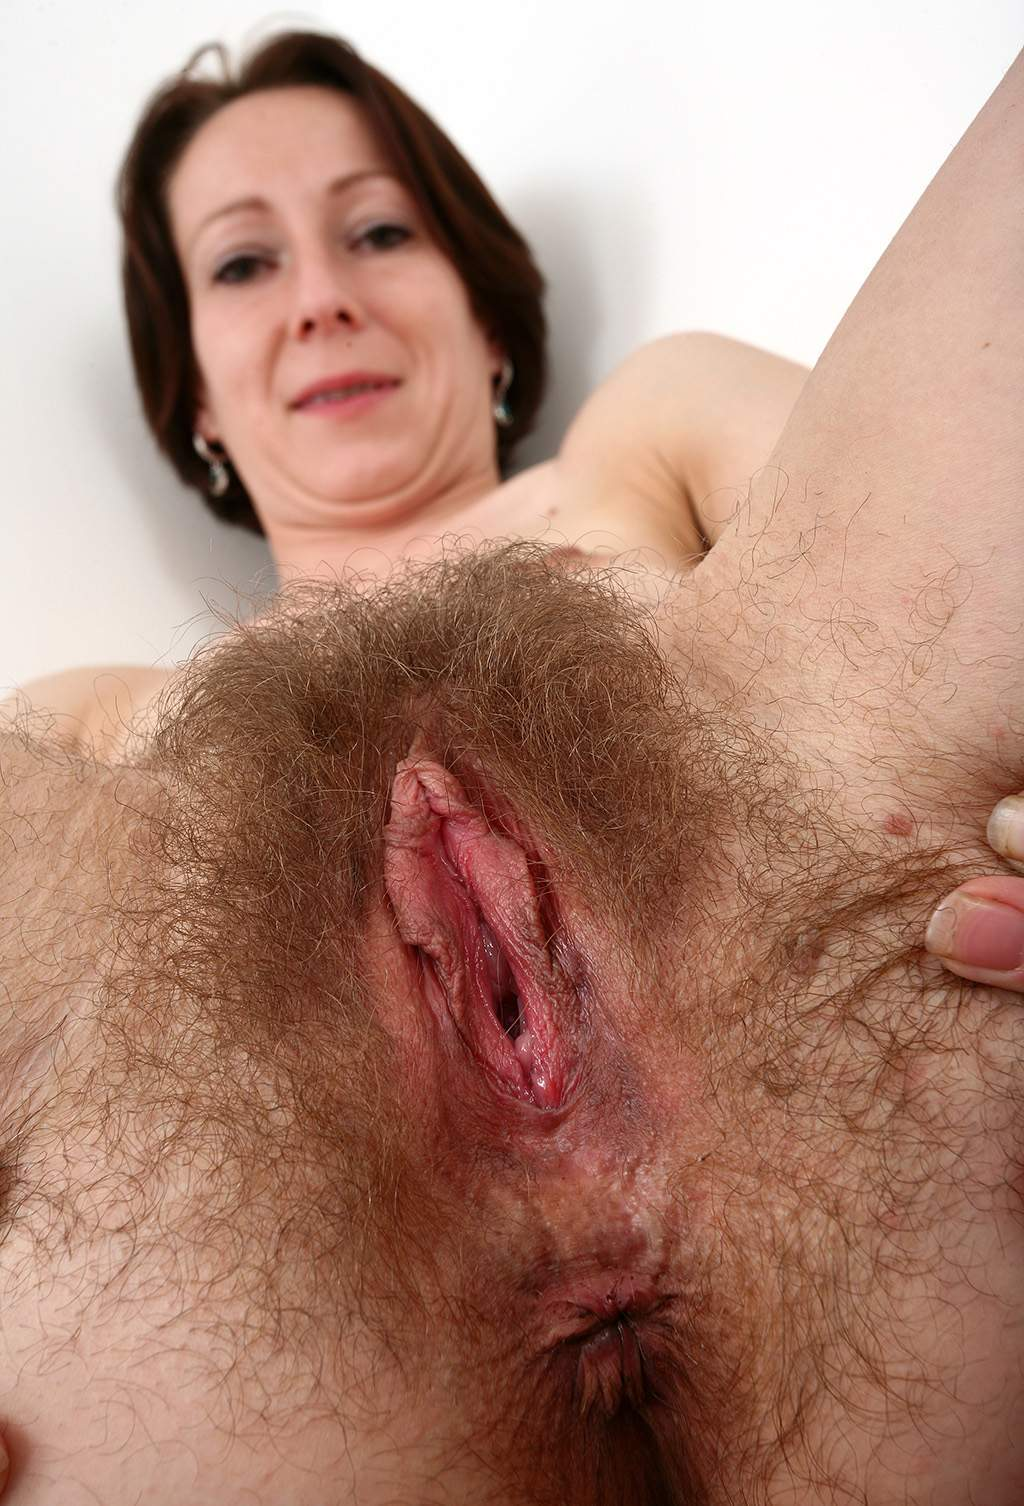 Hairy pussy movie gallery